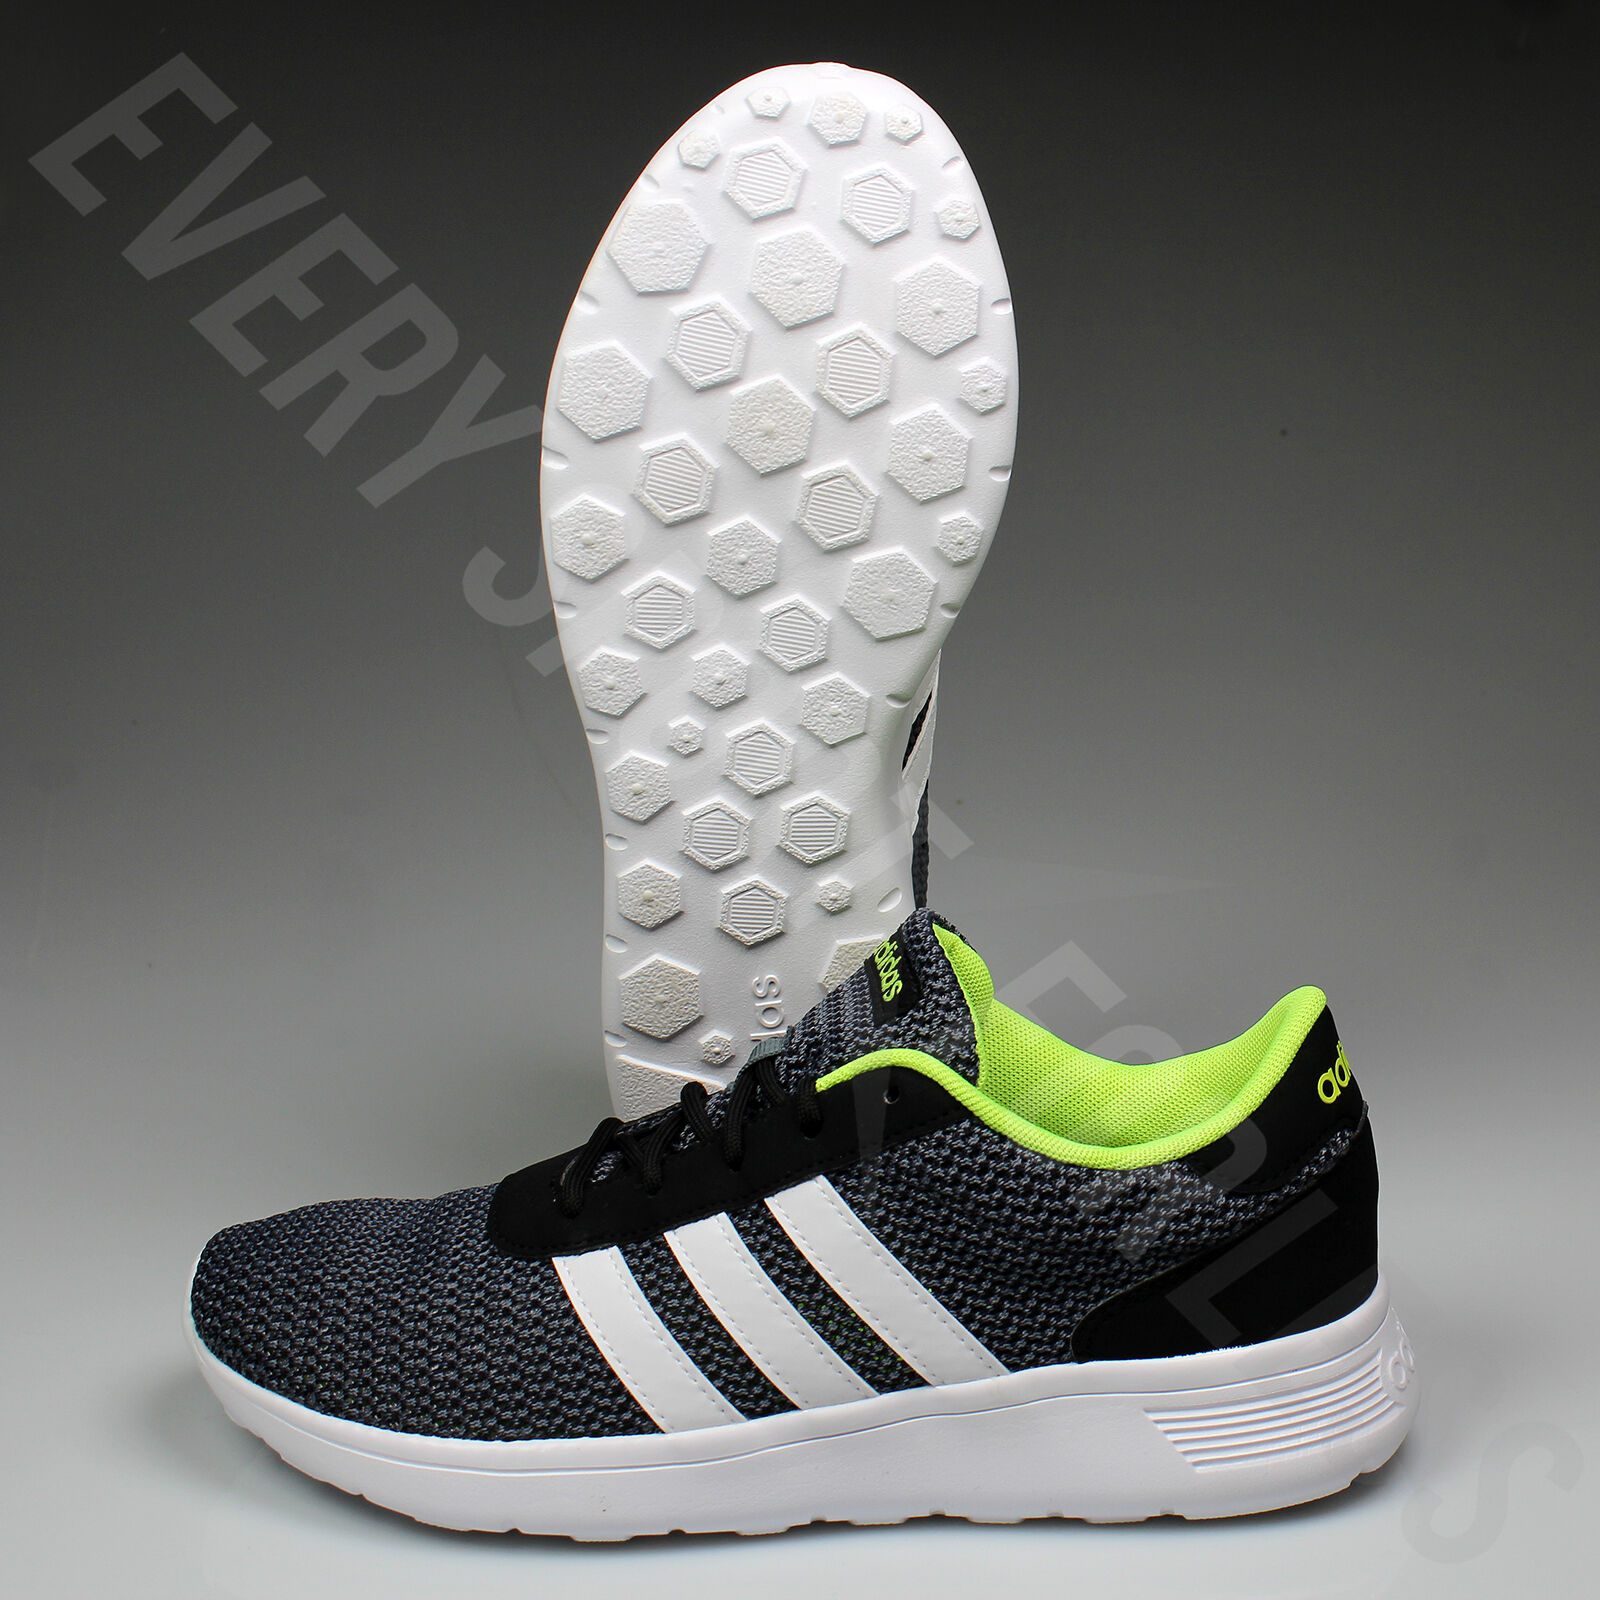 Adidas Neo Lit Racer Mens Running Shoes/Sneaker F99417 Comfortable Comfortable and good-looking